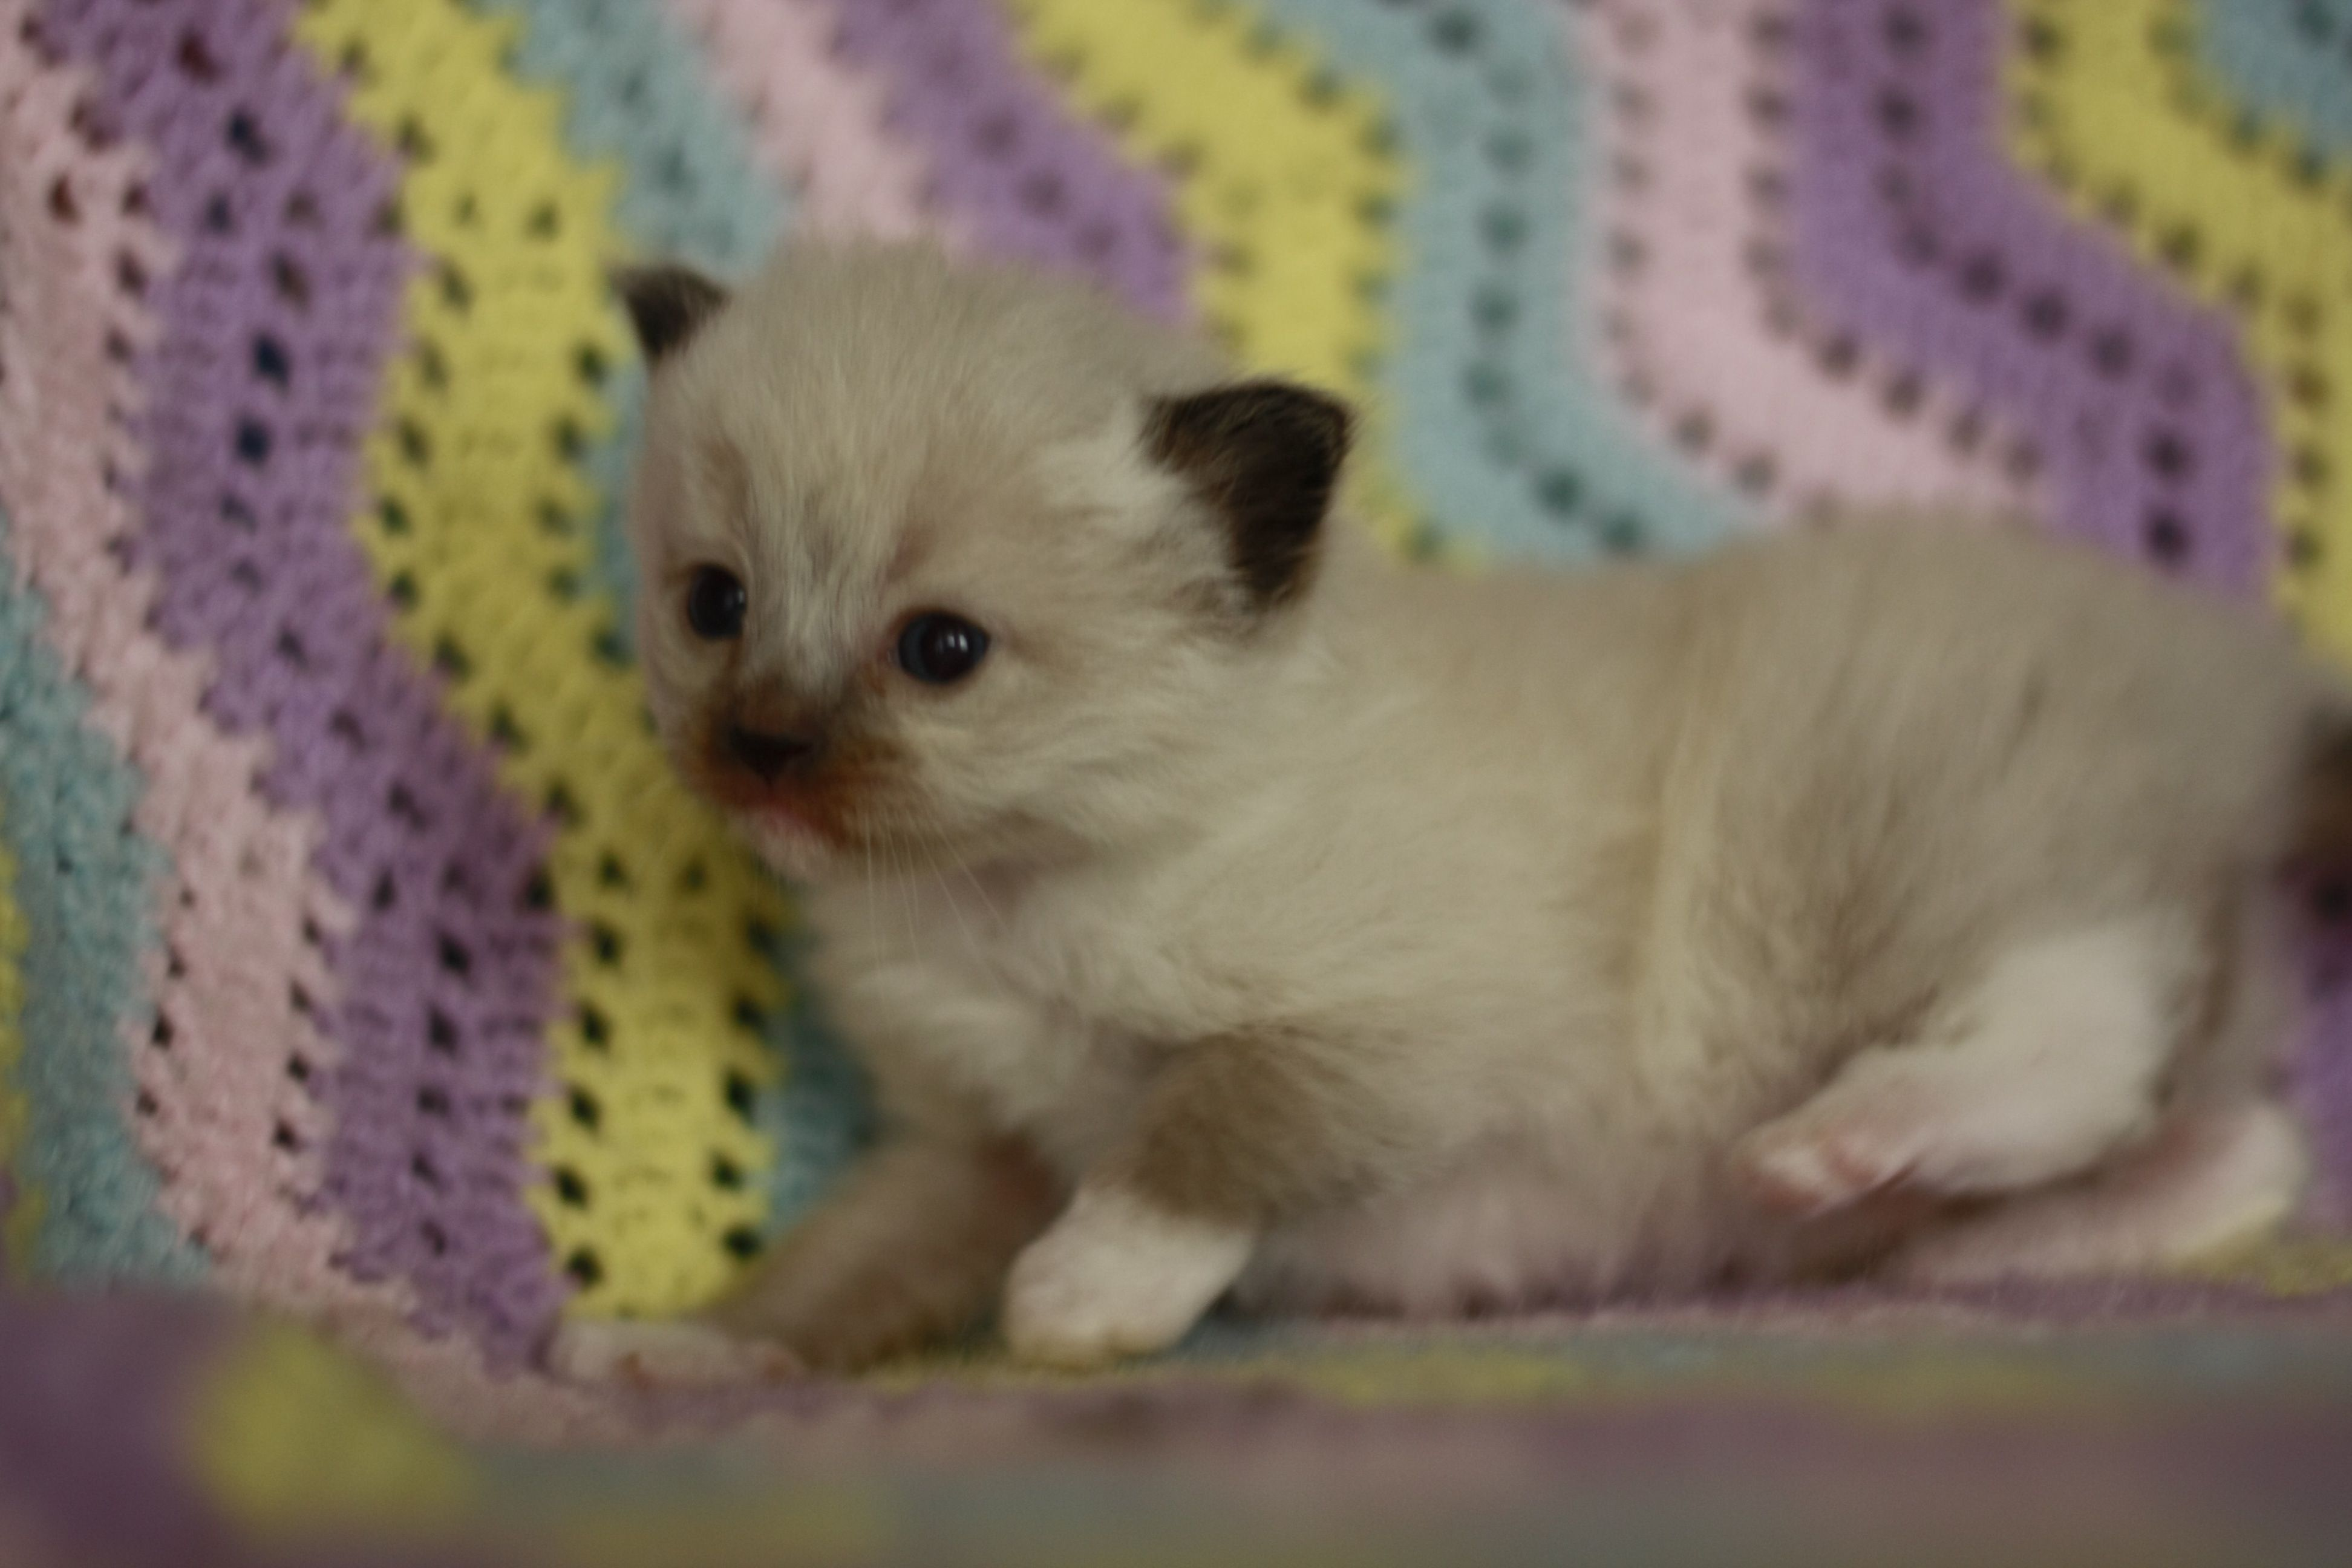 The Simple Guide To Caring For Four Week Old Kittens Live Long And Pawspurr In 2020 Newborn Kittens Kitten Care Cute Baby Cats